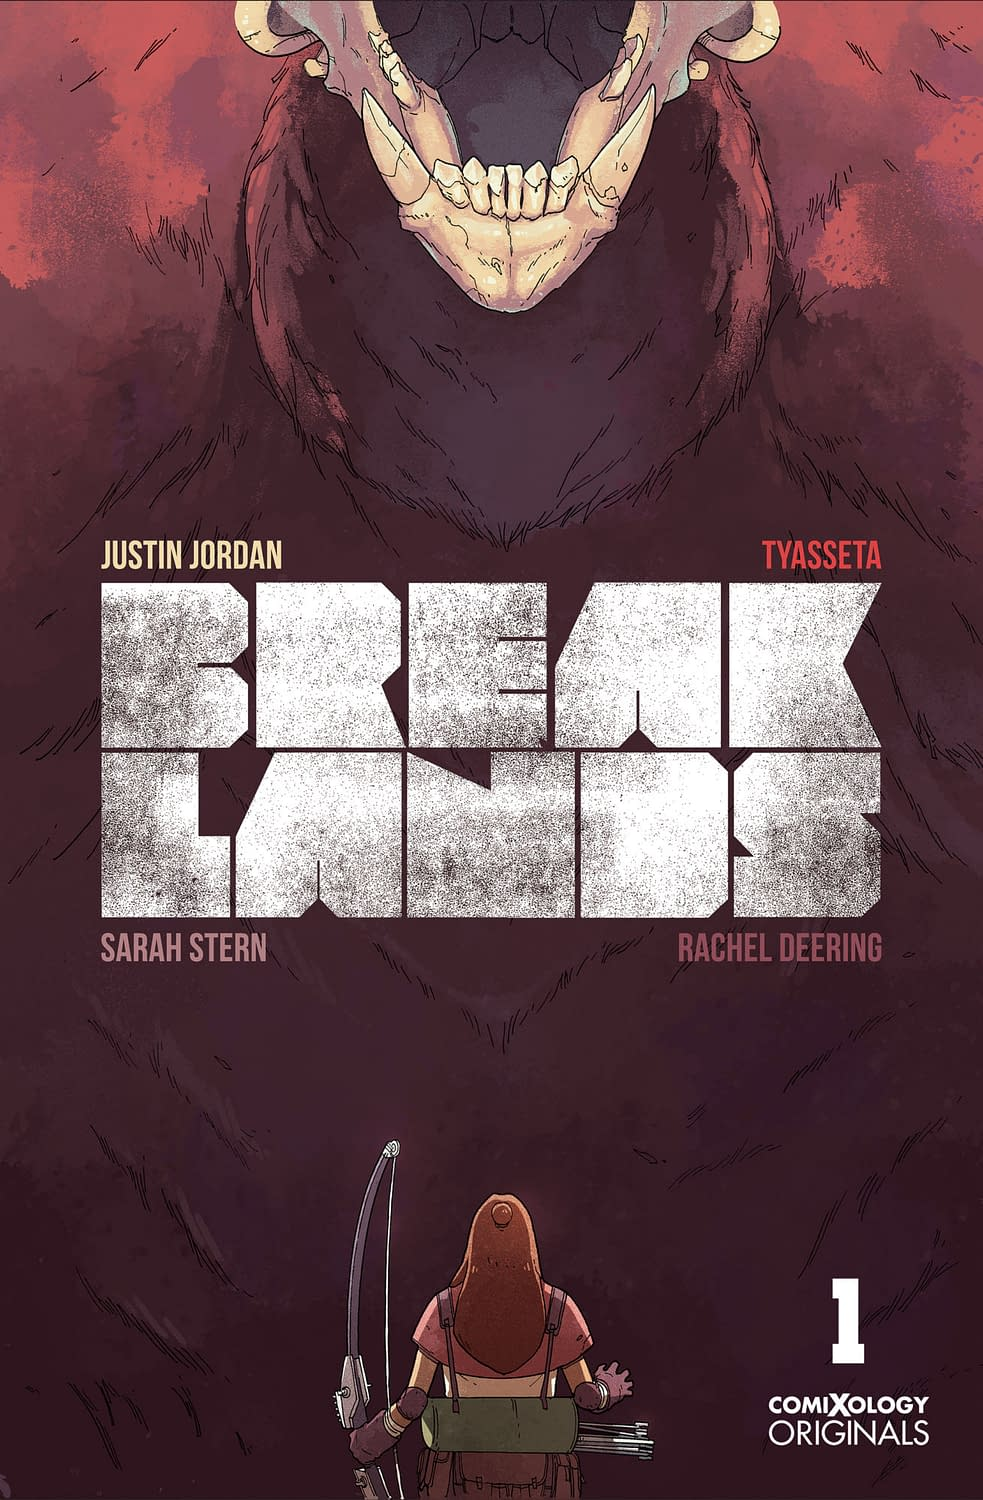 Preview Breaklands, the ComiXology Original from Justin Jordan and Tyasseta Launching this Week